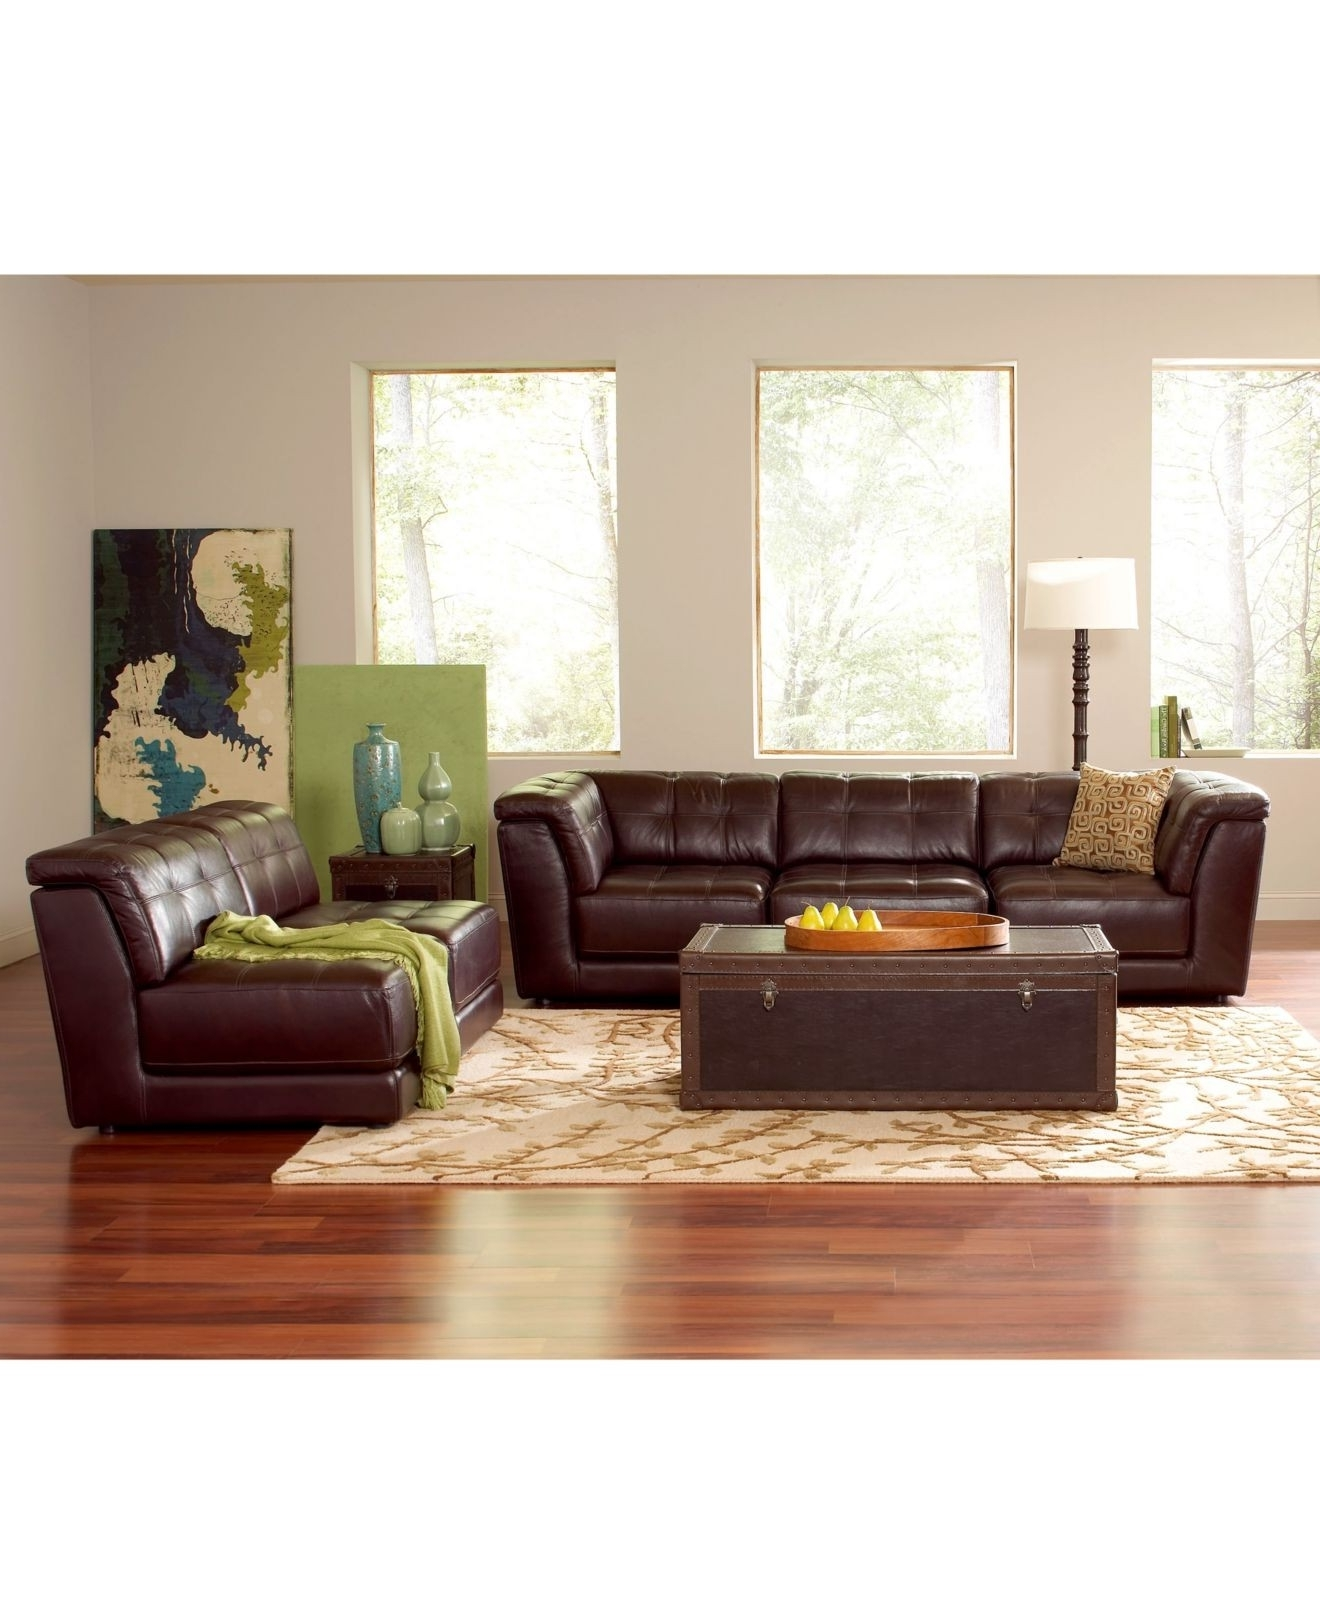 Tampa Sectional Sofas For 2019 New Sectional Sofa Tampa – Buildsimplehome (View 6 of 20)